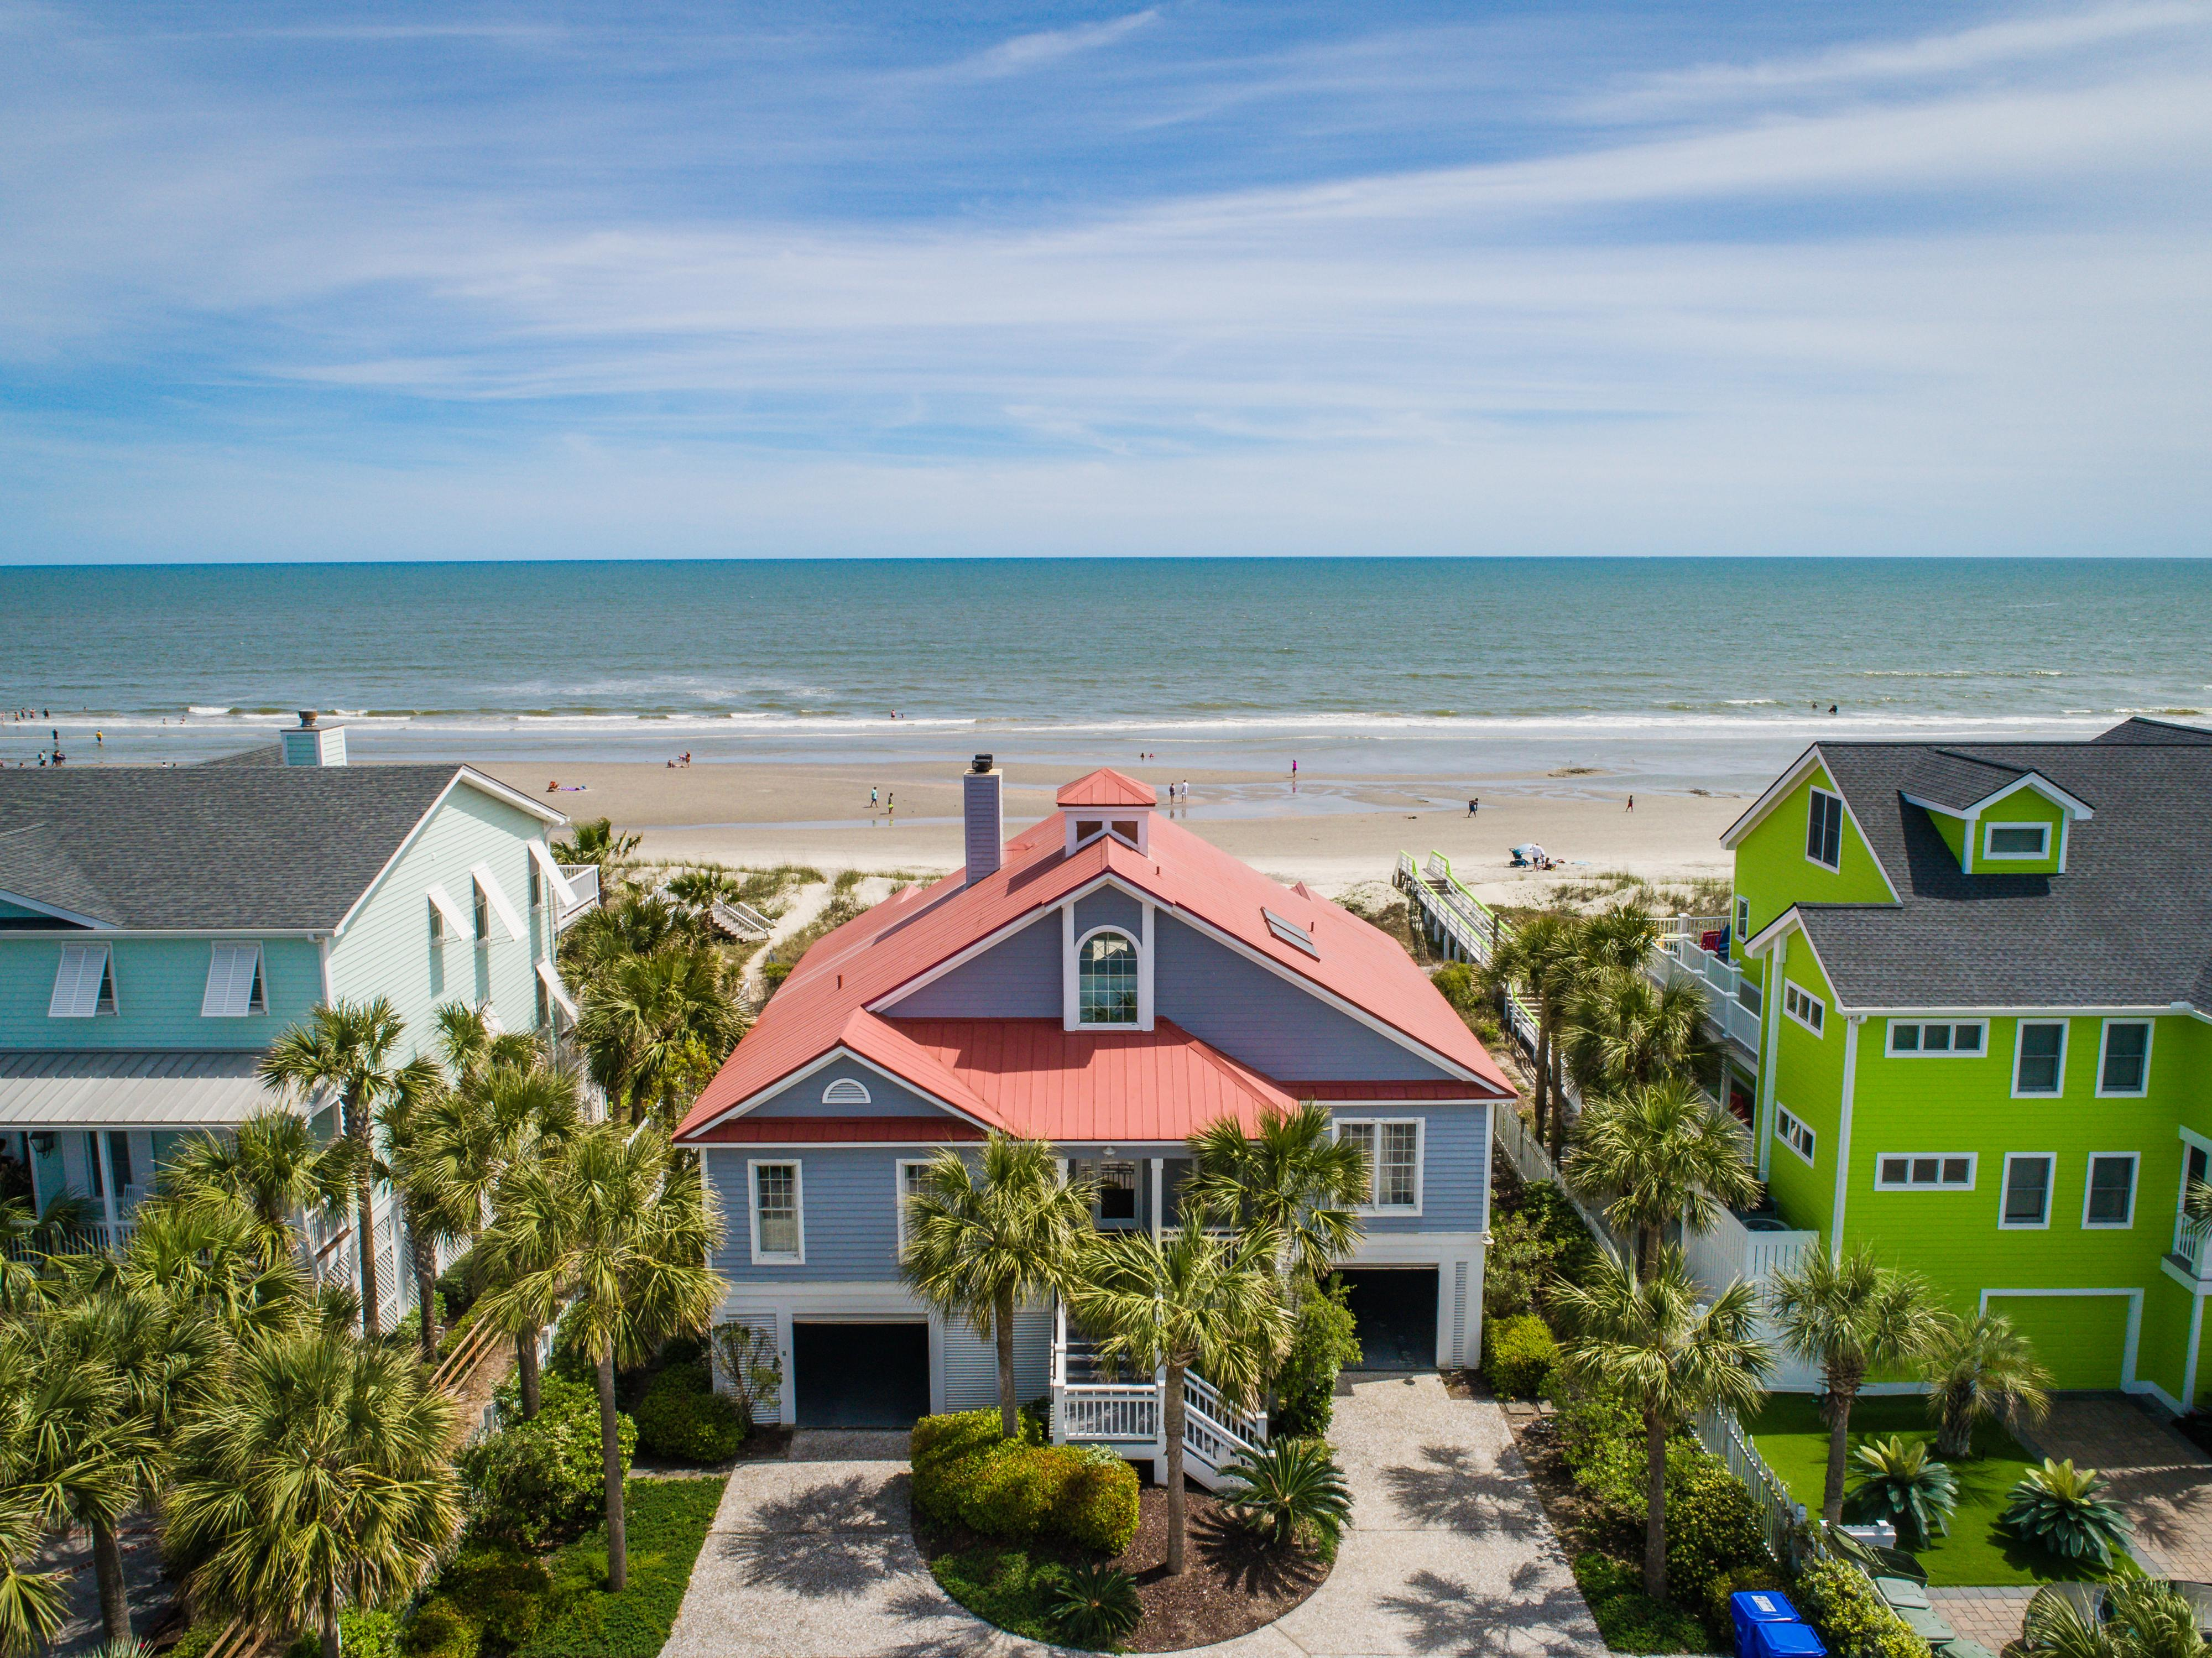 906 Ocean Blvd | Isle of Palms, SC